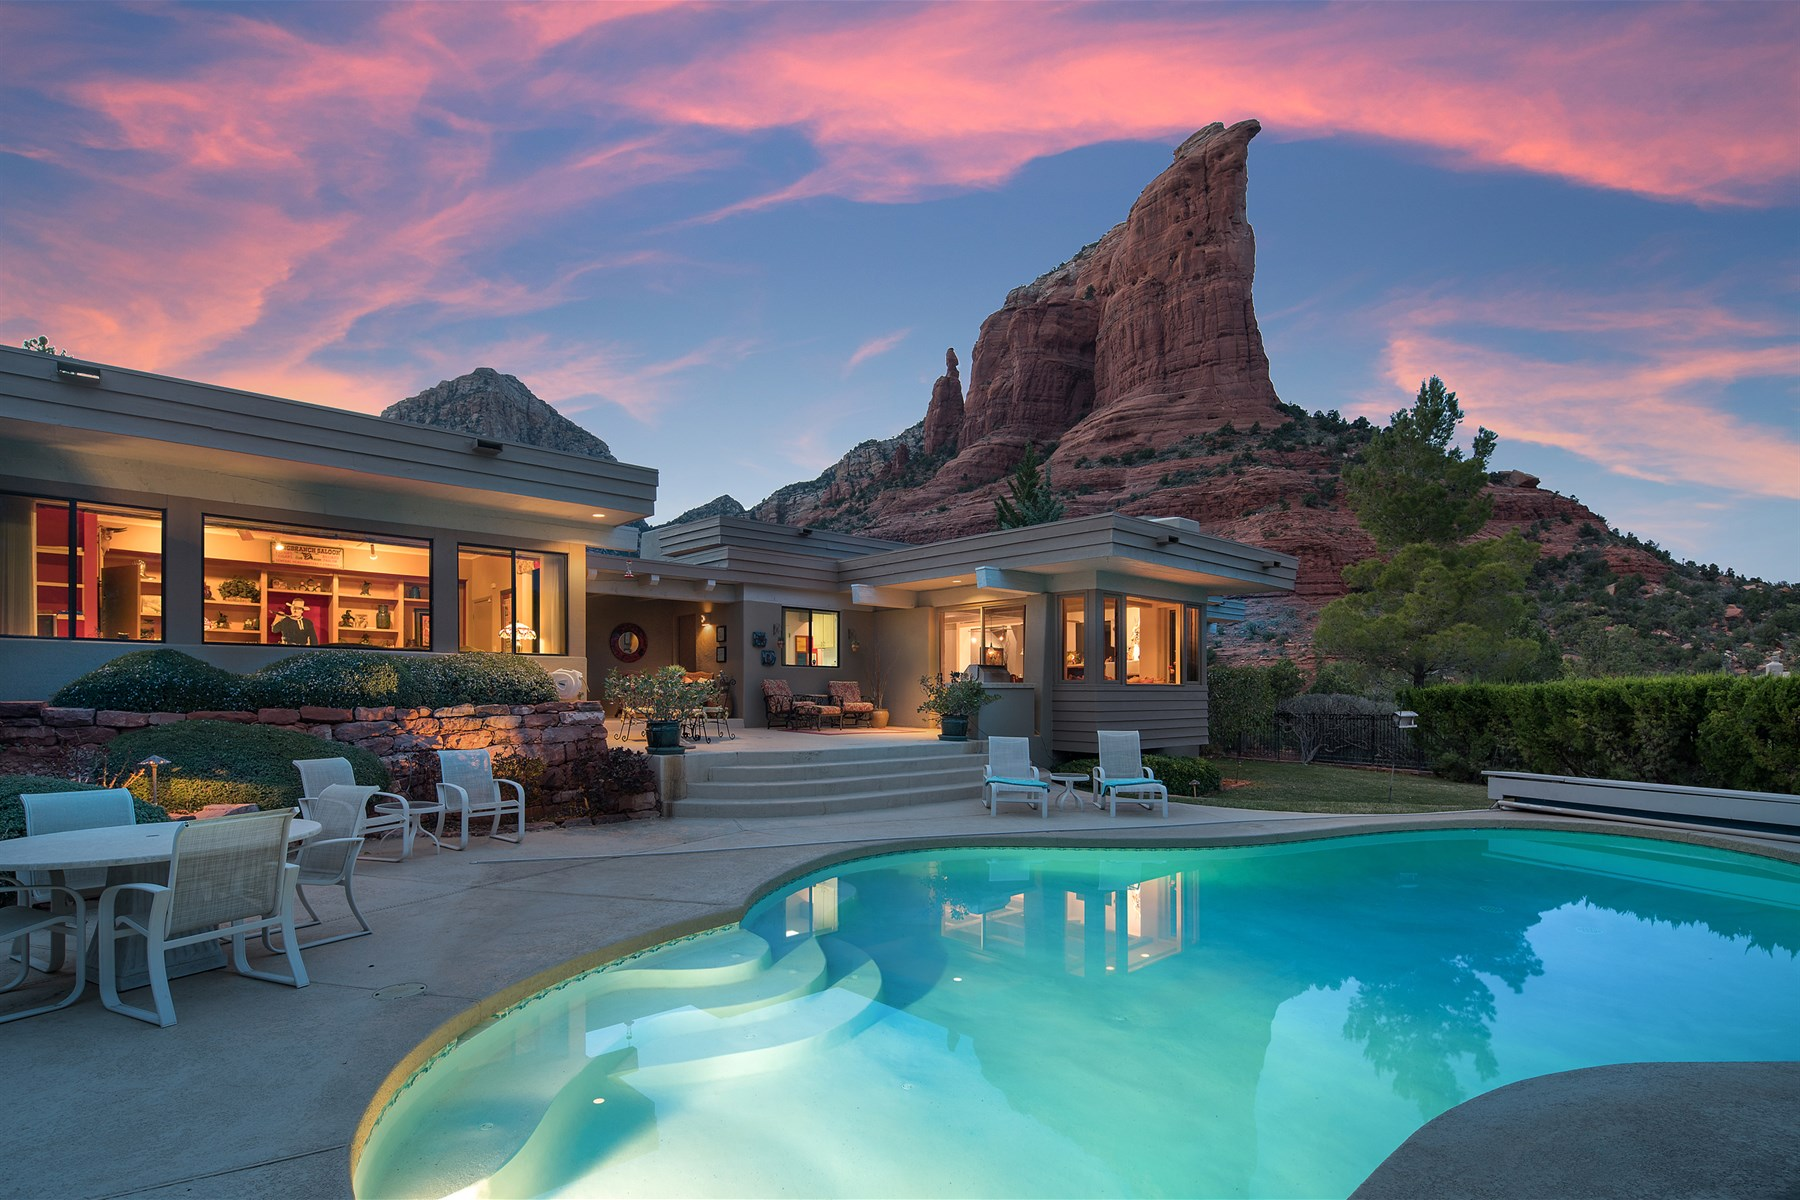 Villa per Vendita alle ore single-level Frank Lloyd Wright architecturally inspired home 240 Shadow Rock Drive Sedona, Arizona, 86336 Stati Uniti